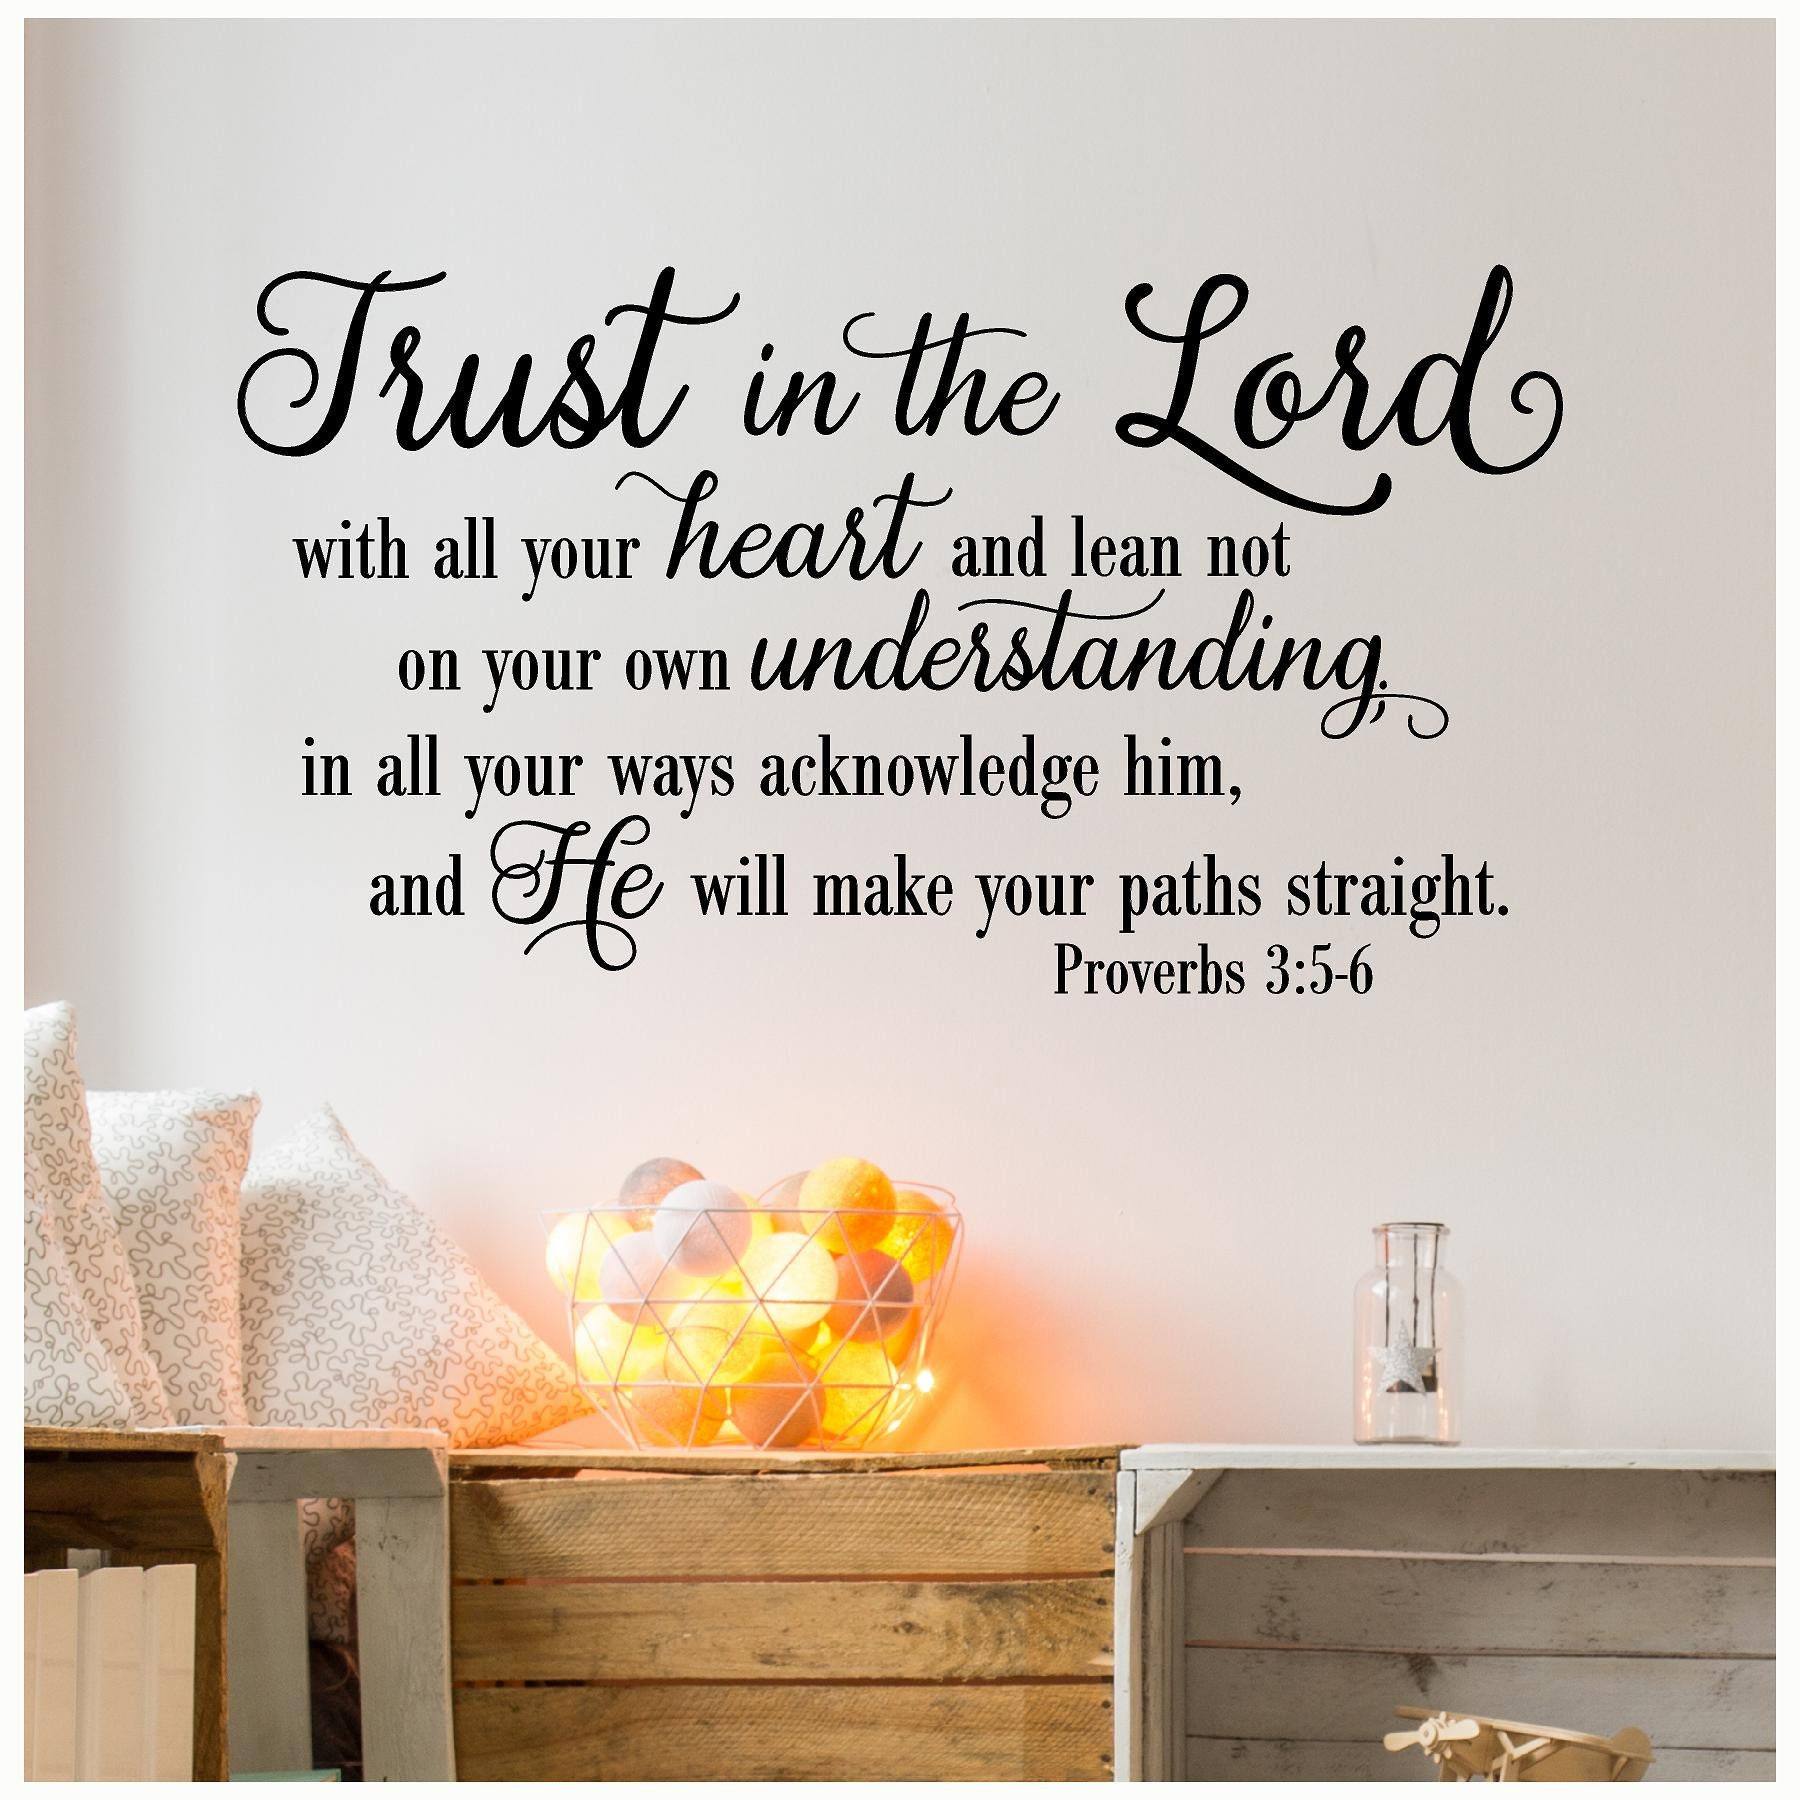 The Lord S Love Wall Decal: Trust In The Lord NEW Vinyl Wall Decal